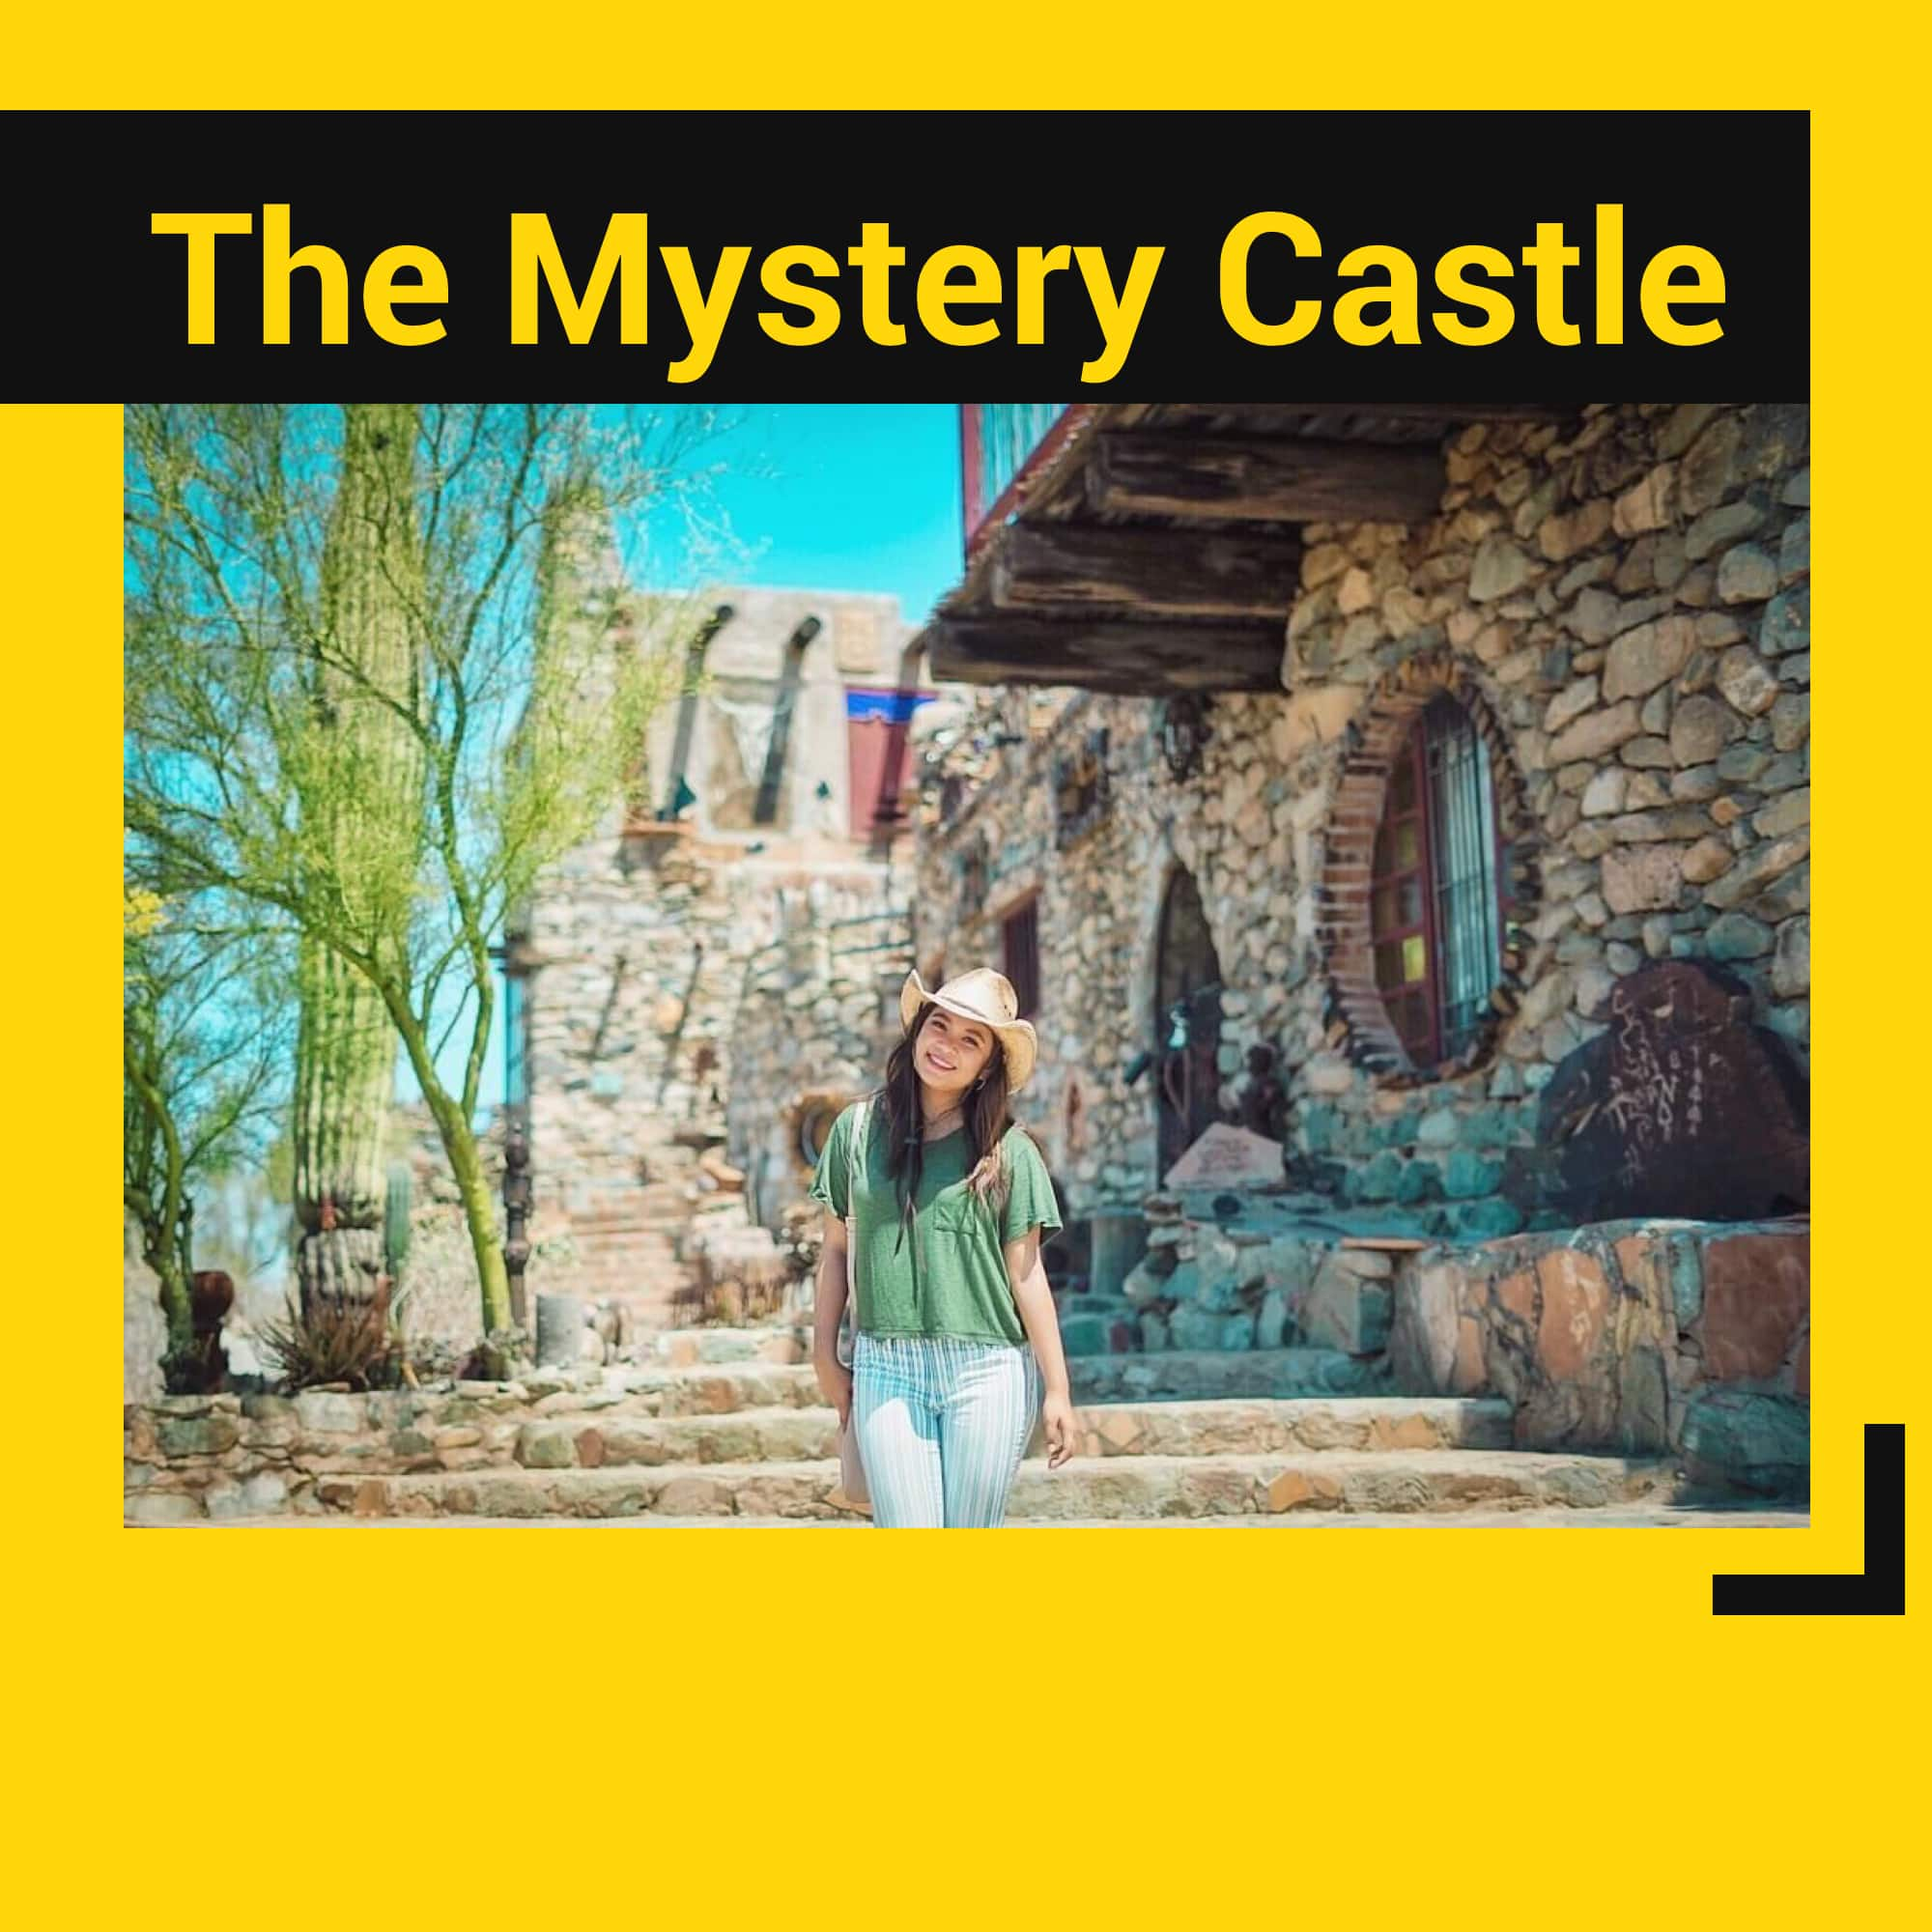 The Mystery Castle in Phoenix